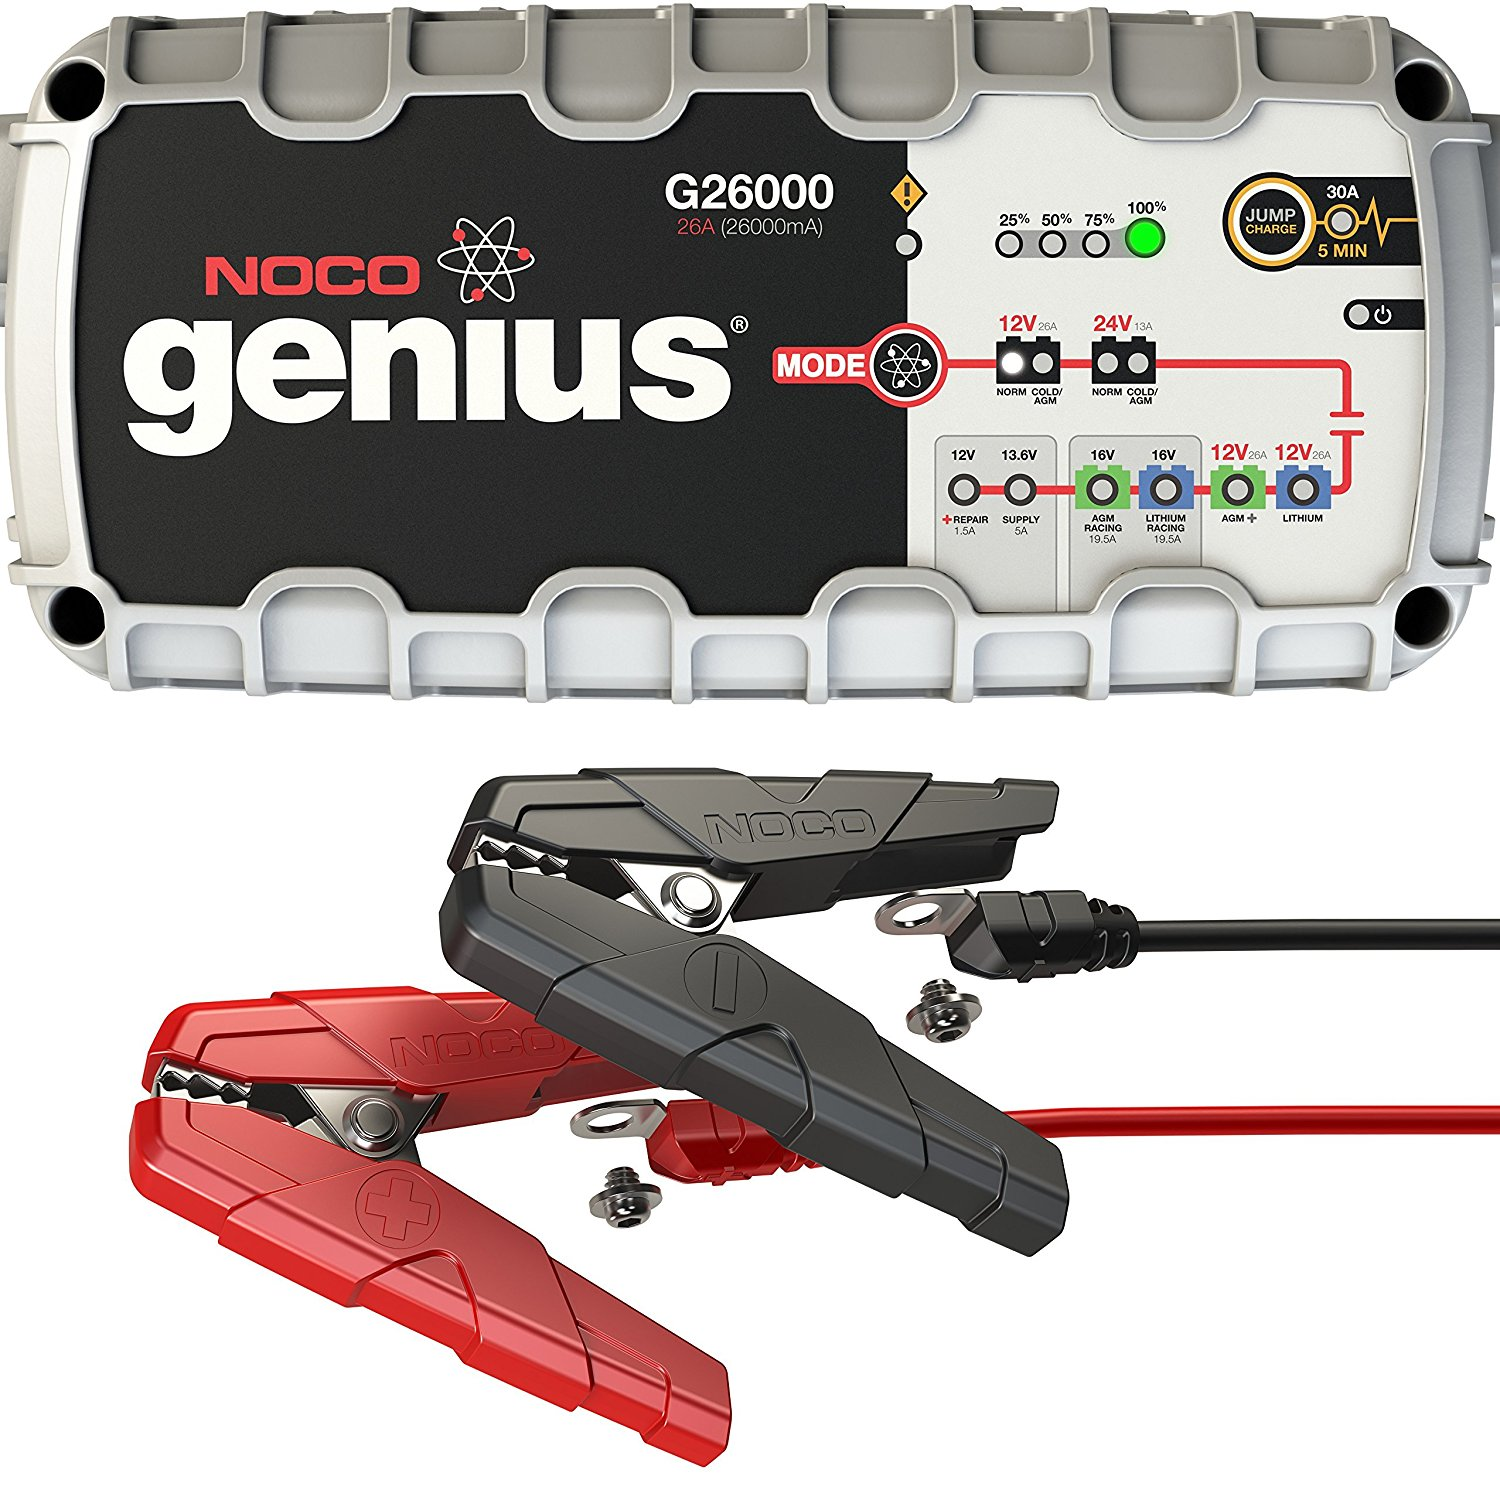 NOCO Genius 12 Volt / 24 Volt Pro Series UltraSafe Smart Battery Charger – Available in 7 Sizes